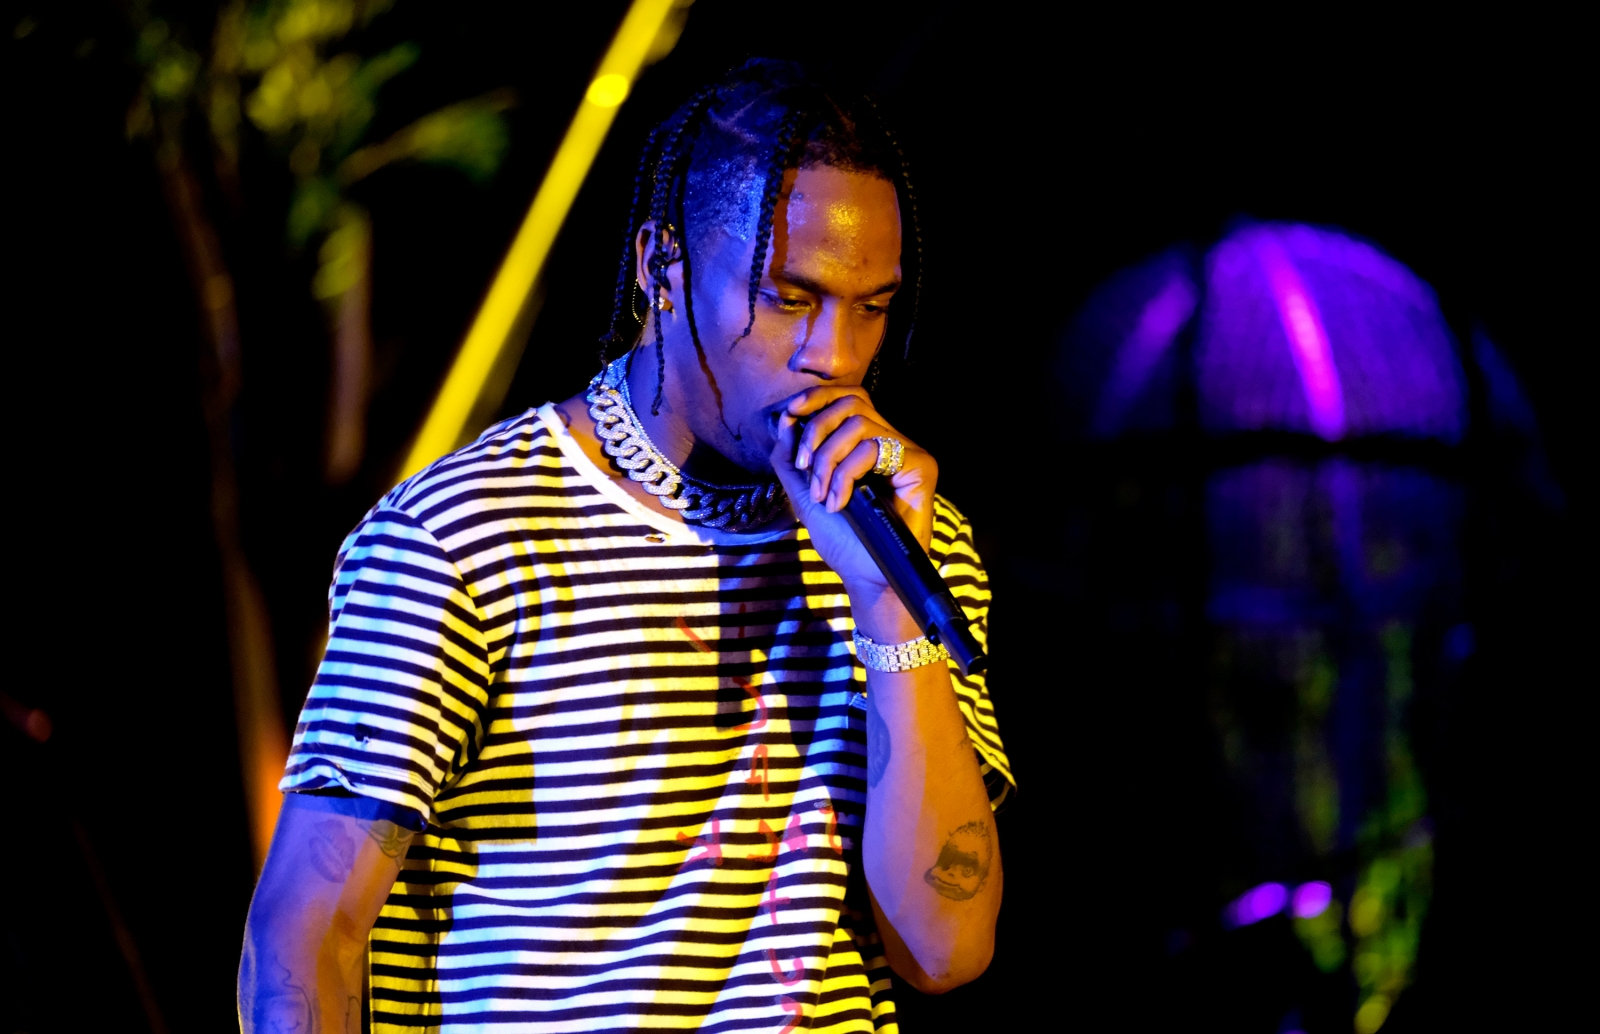 travis scott - photo #41